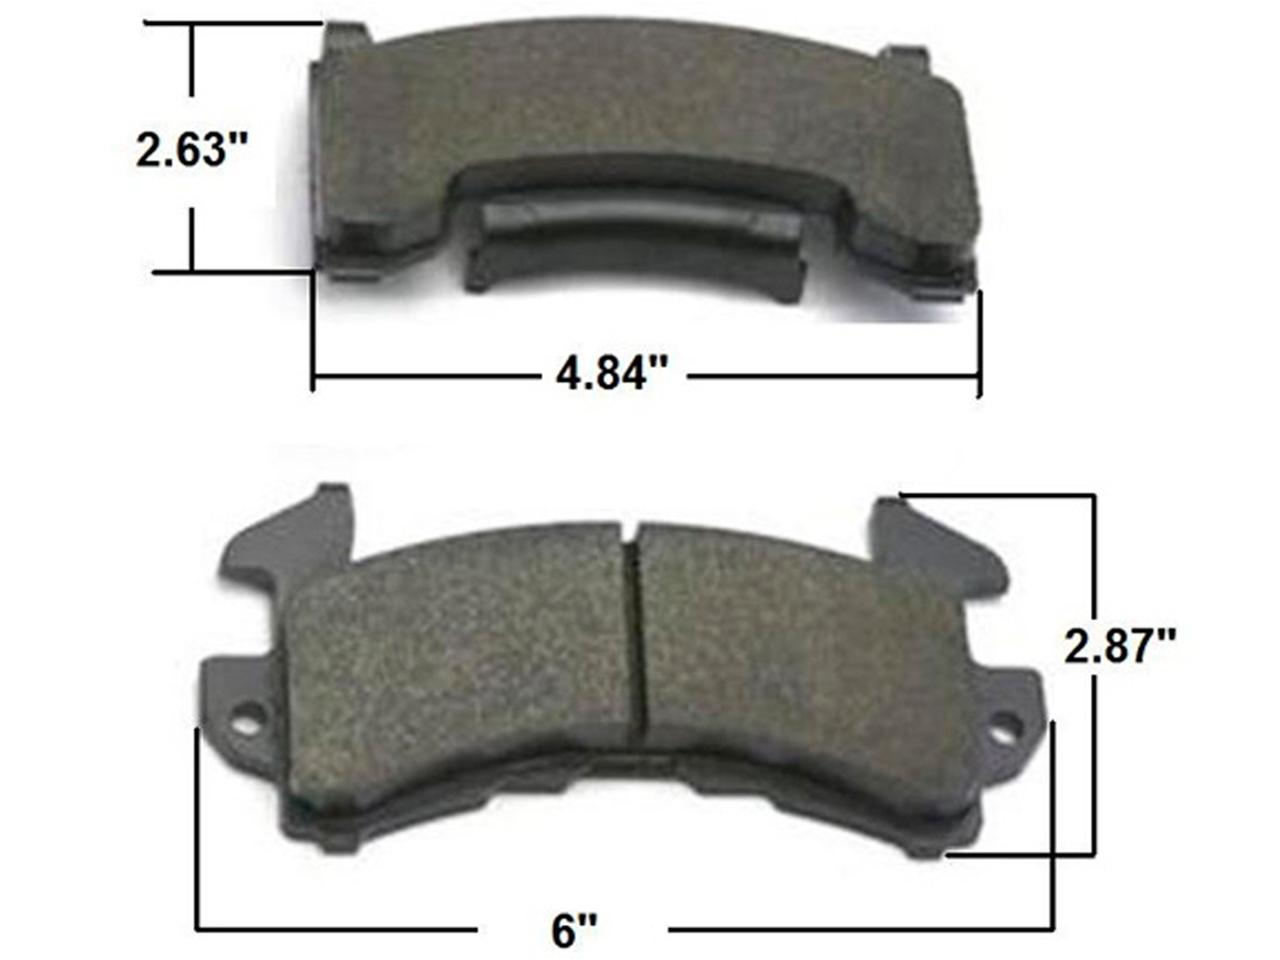 AFCO GM Metric Brake Pads - C1 - (Less Aggressive)